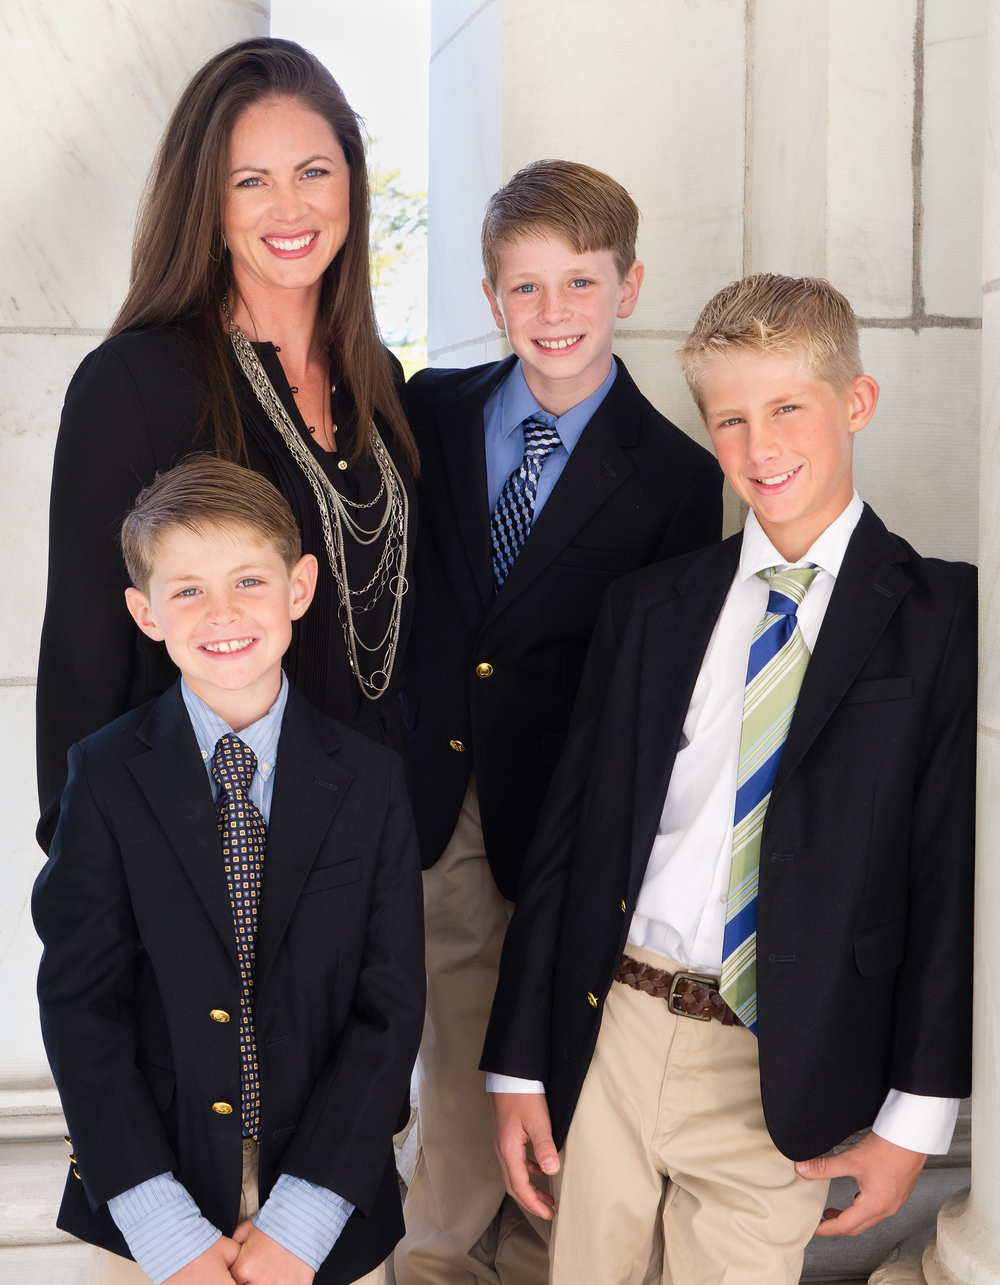 Gina Fratarcangeli and her boys Tyler (2005), Max (2003) and AJ (2001)